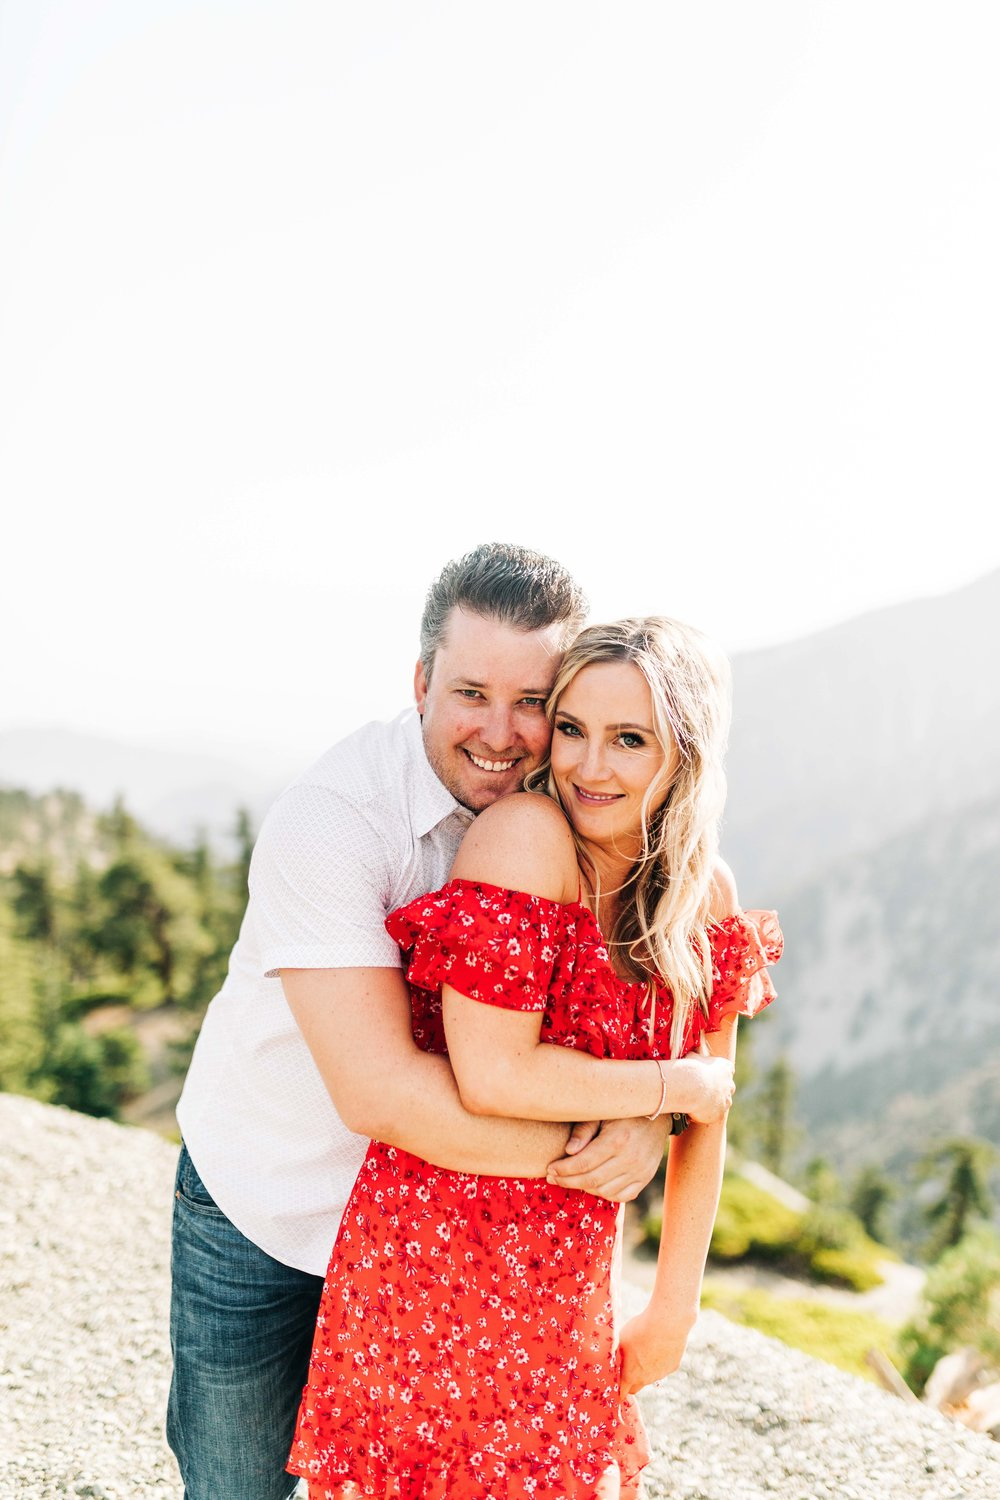 Rachael&Keith-Mt-Mount-Baldy-Engagement-Photos-Clarisse-Rae-Southern-California-Wedding-Photographer_12